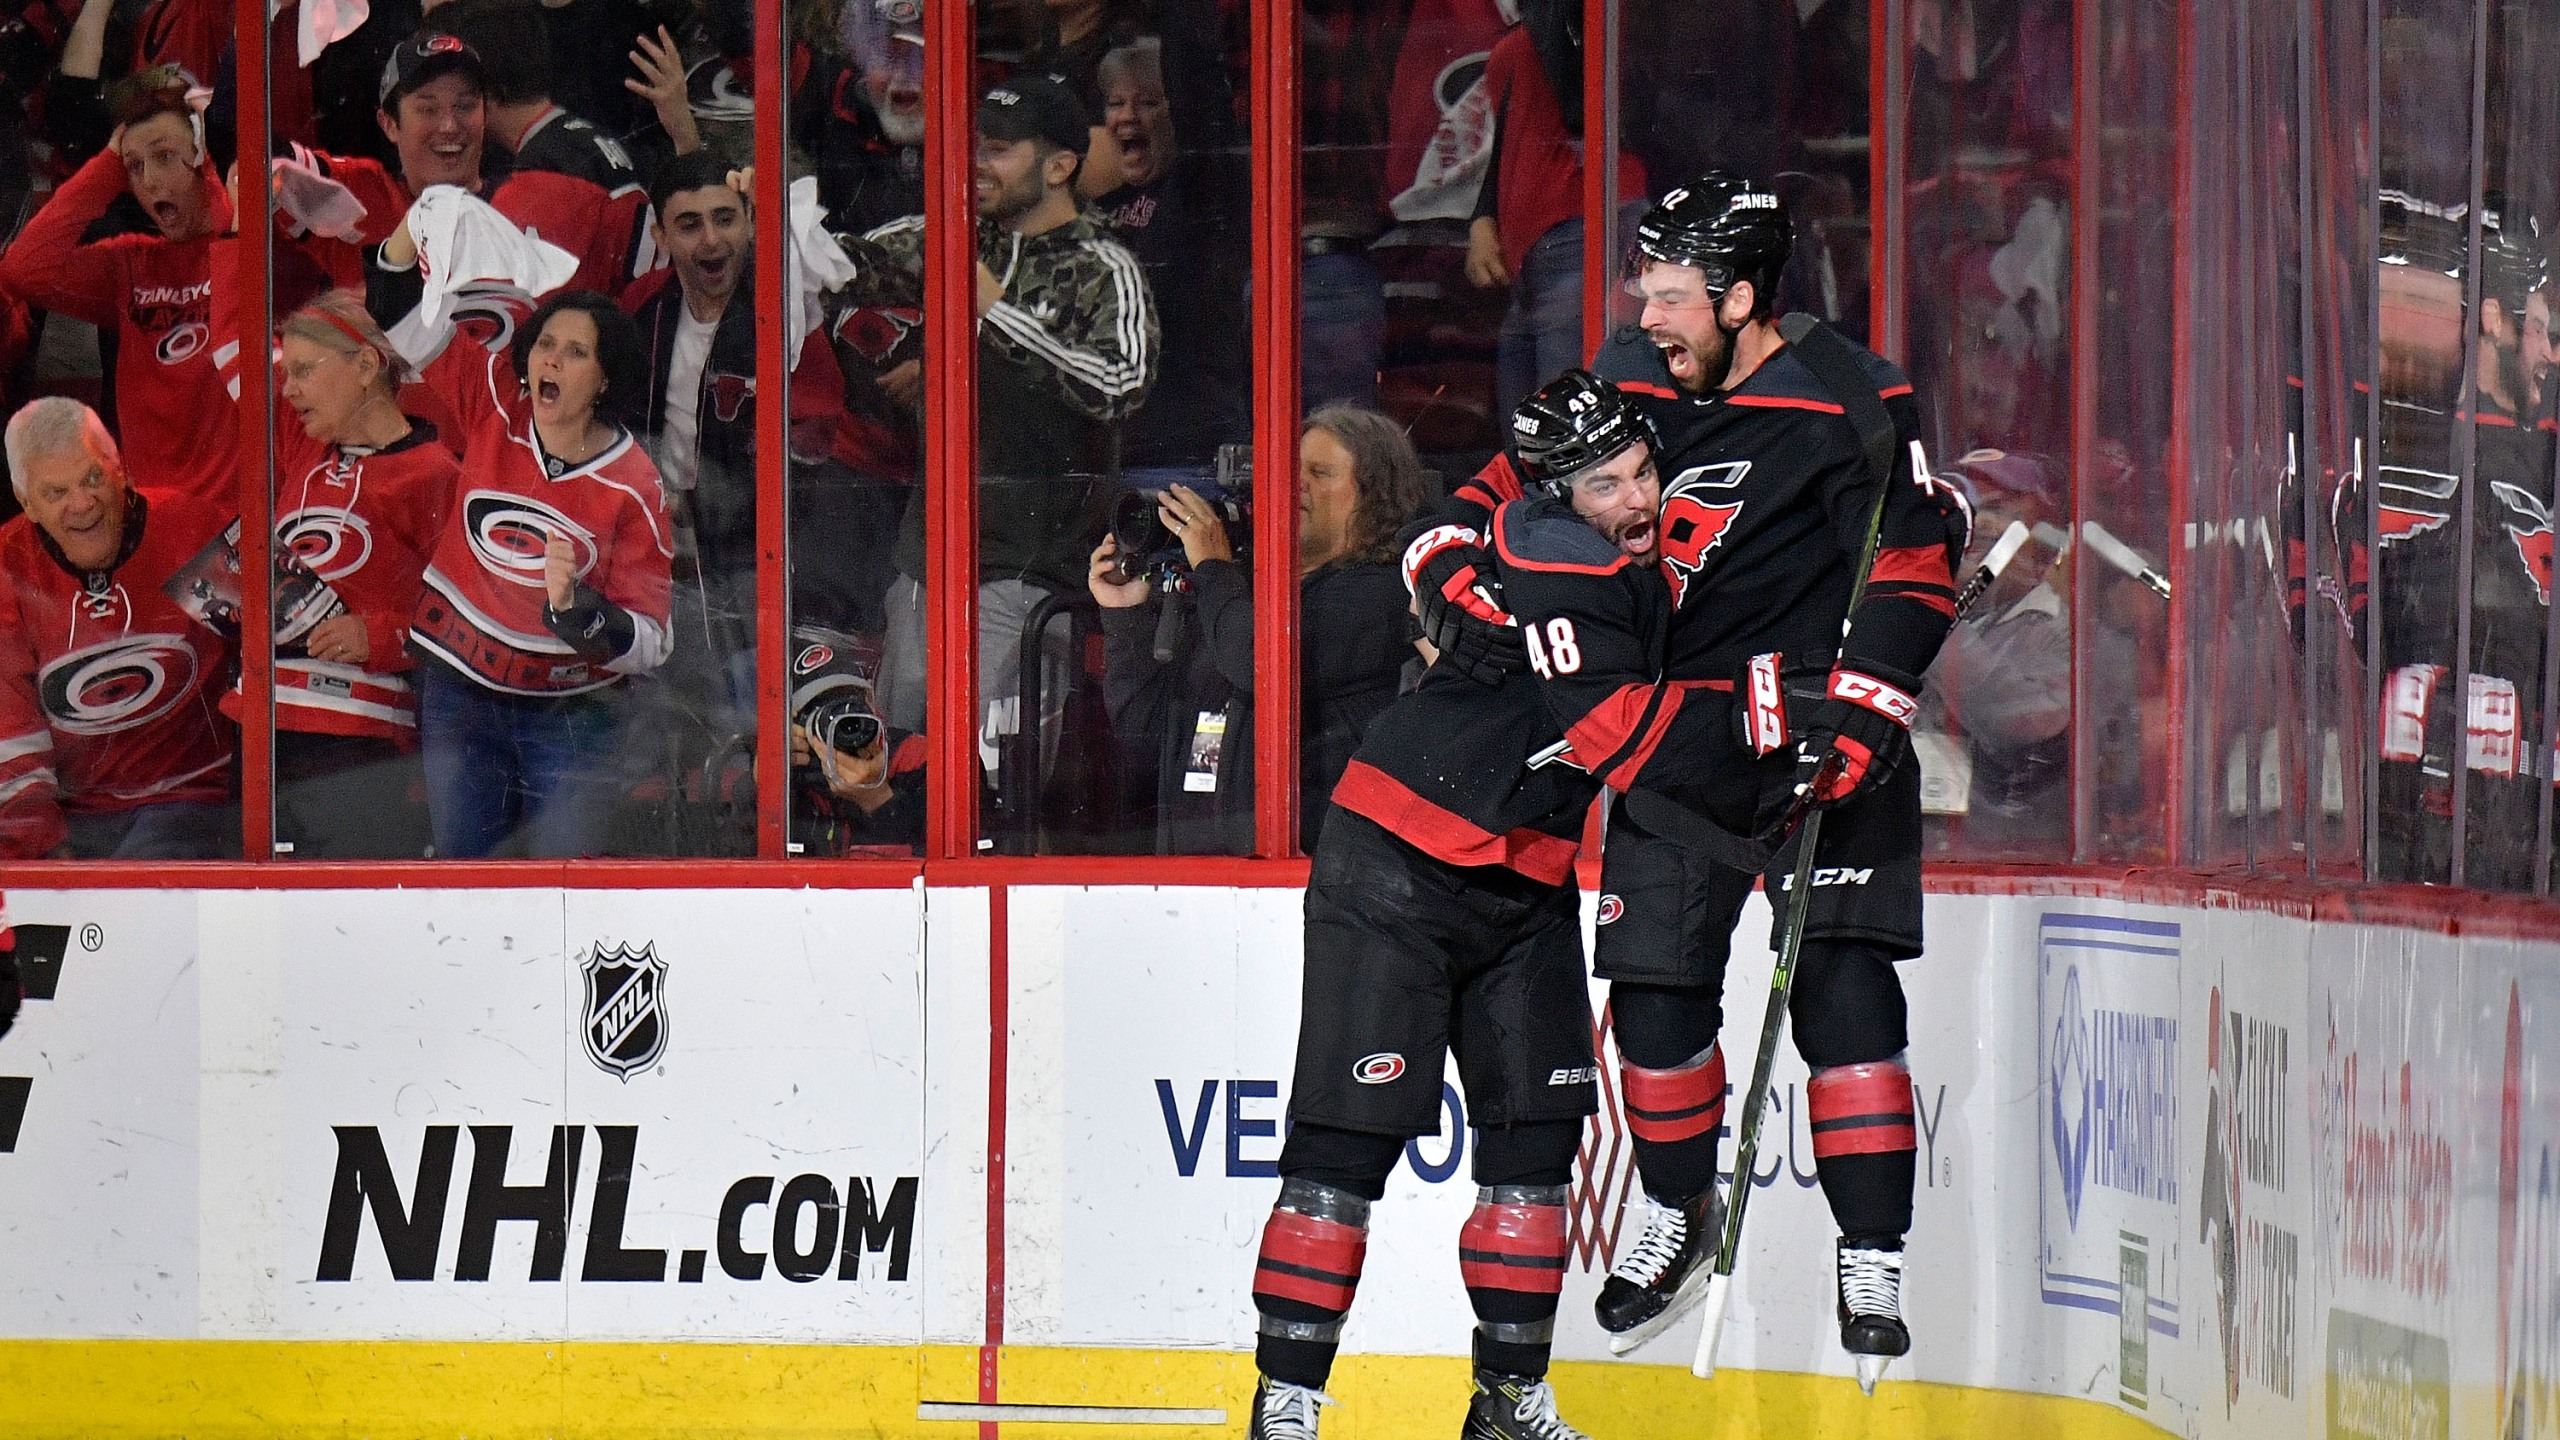 Hurricanes announce 2019-20 schedule featuring weekend-heavy